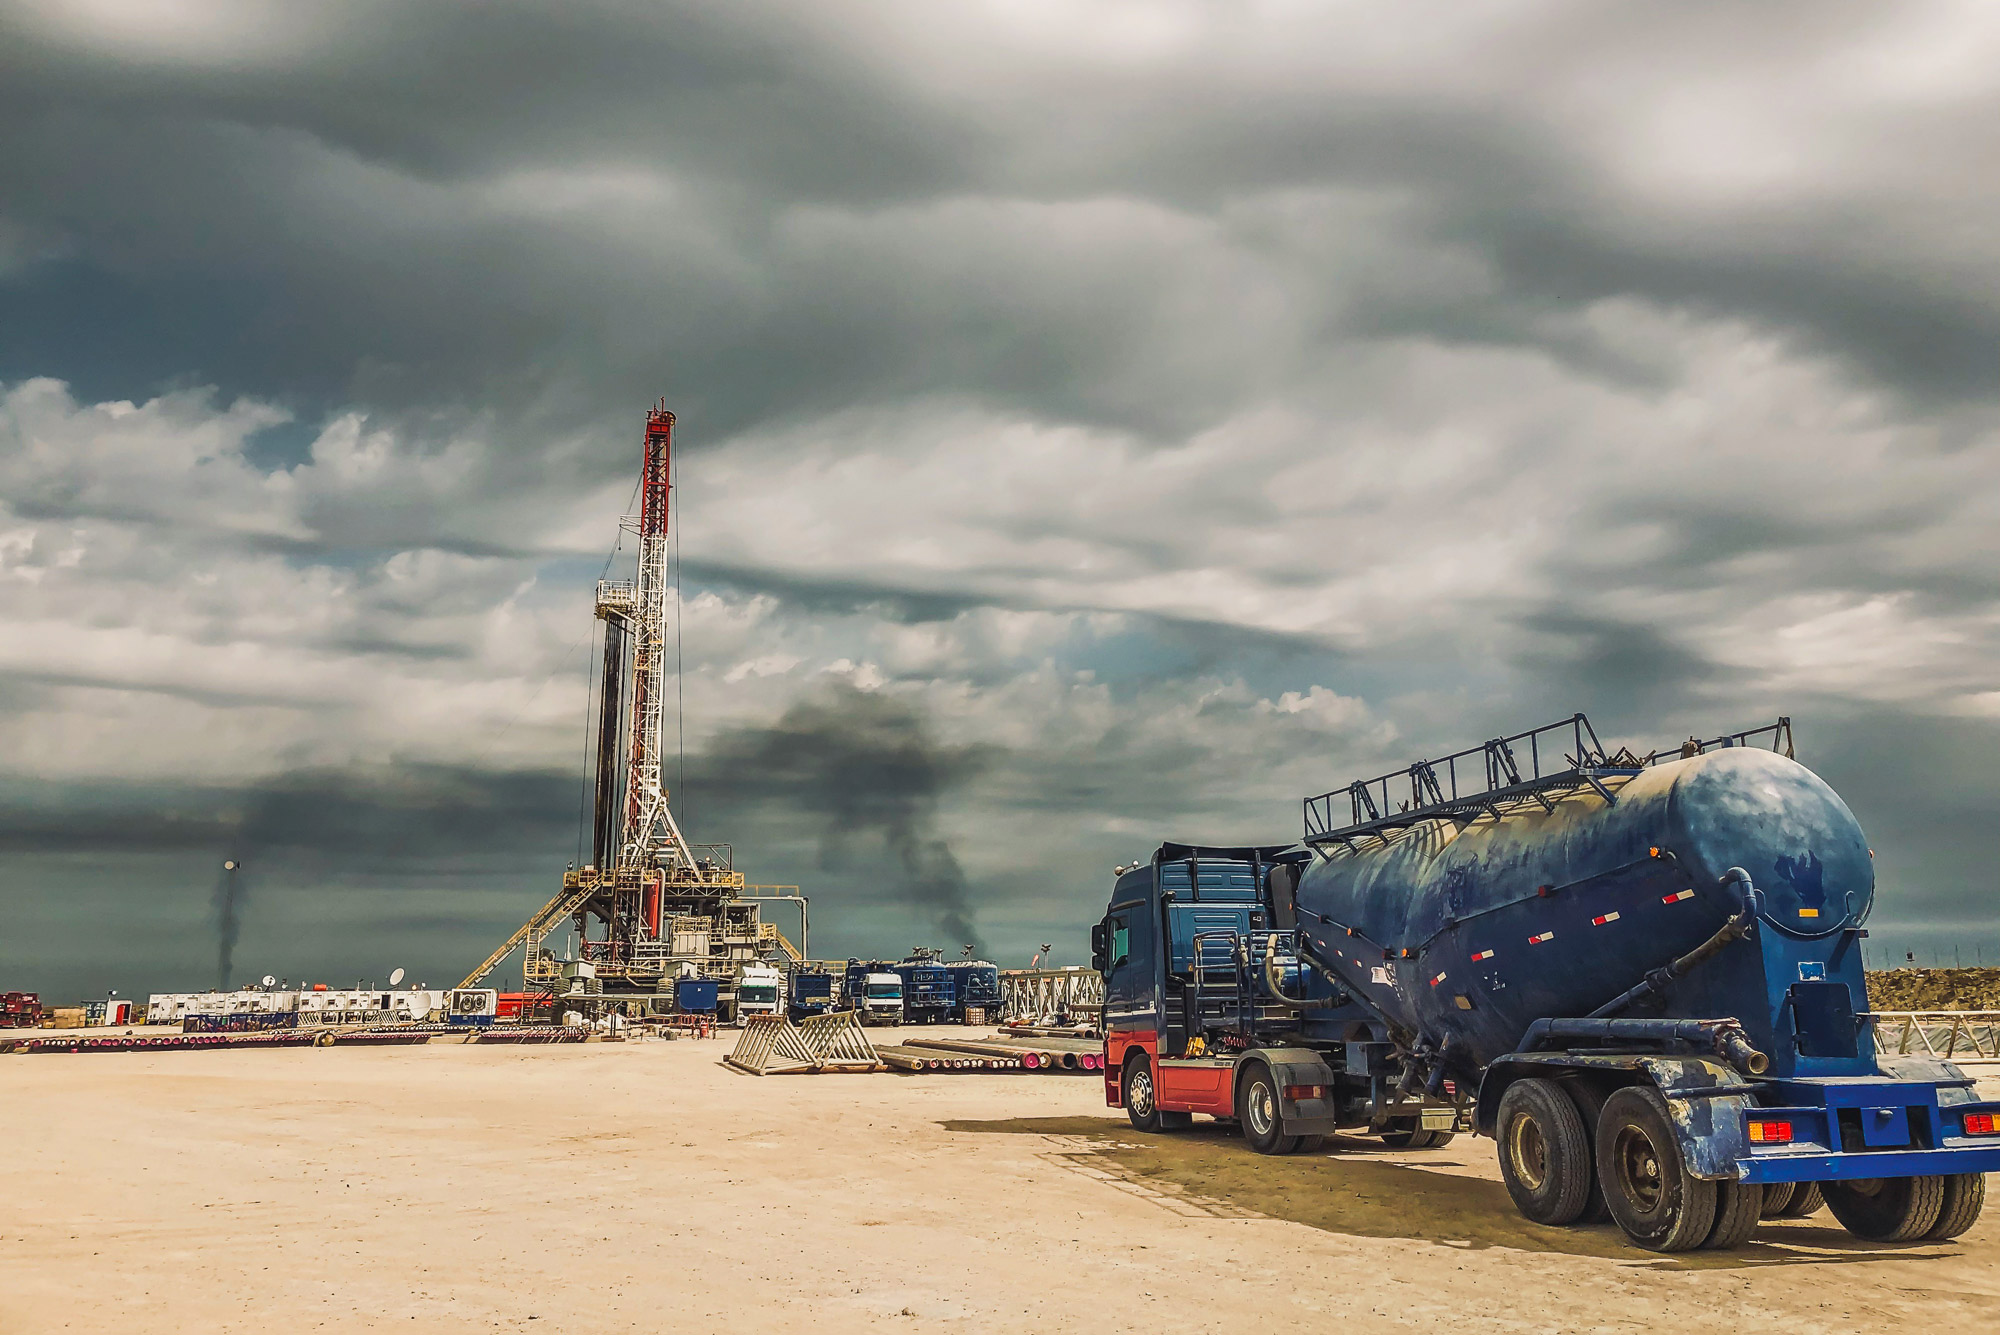 A photo of a truck approaching a fracking rig